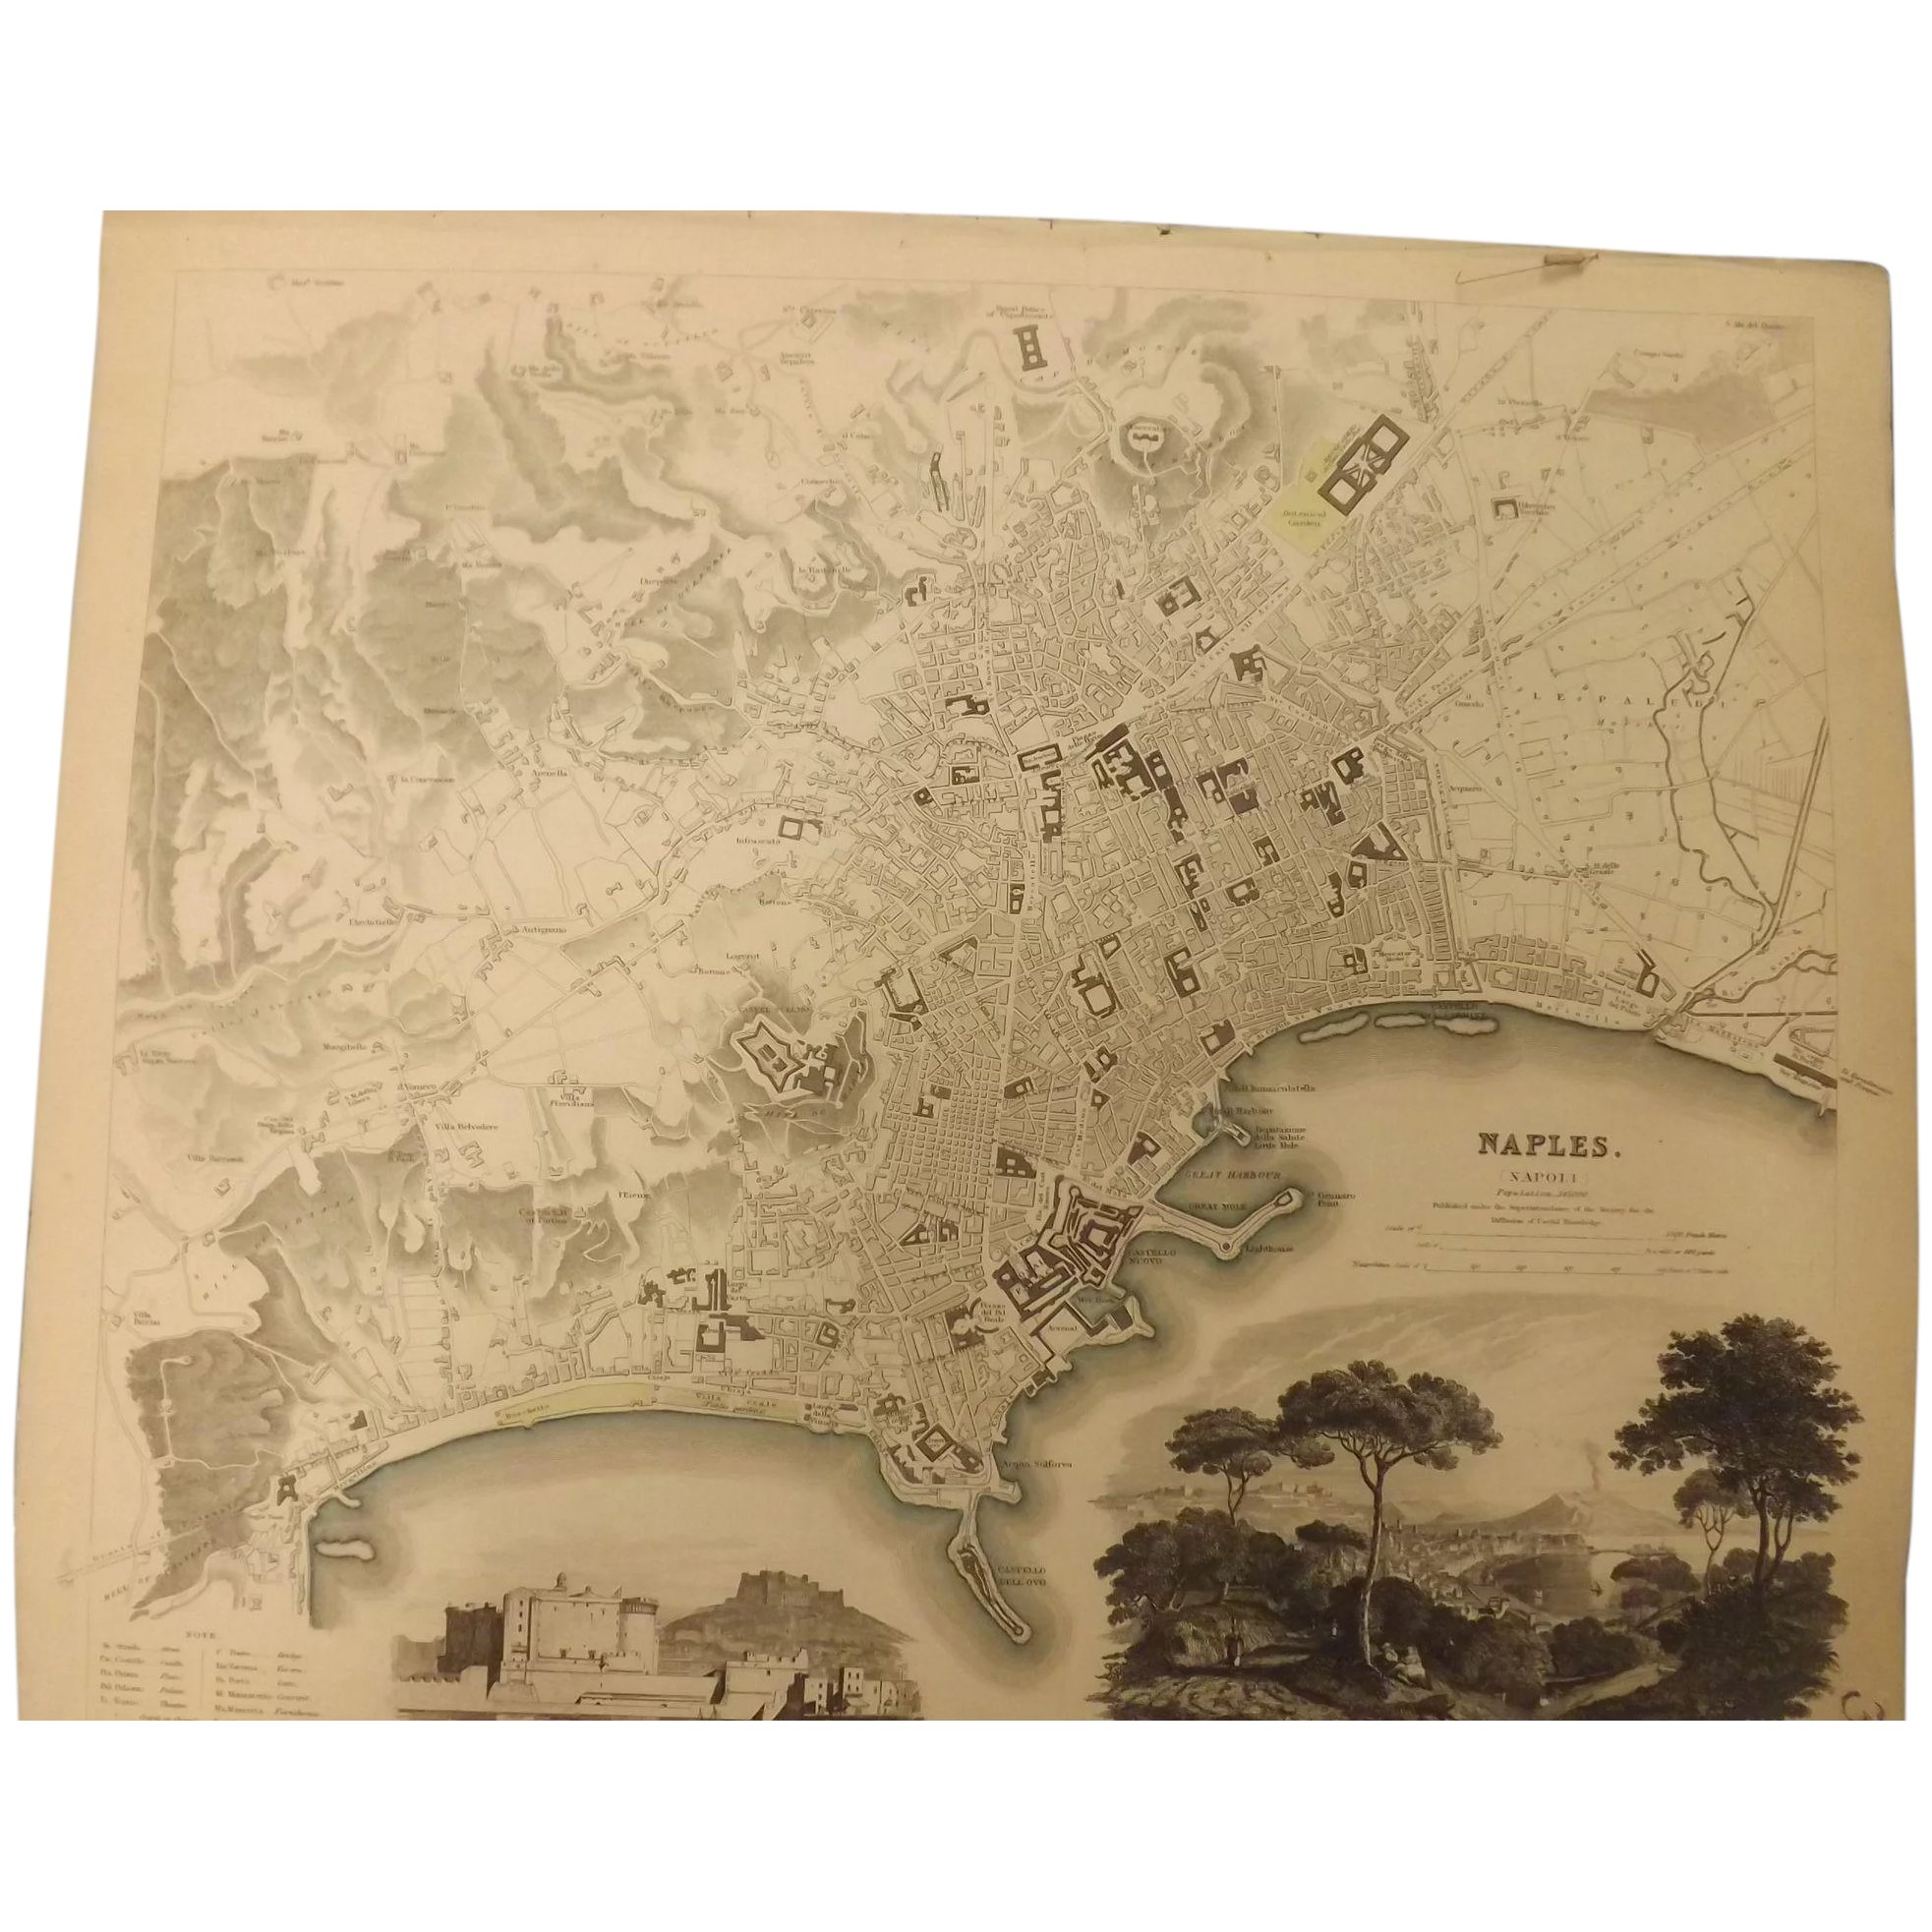 An Original Atlas Map of NAPLES circa 1835 Published By